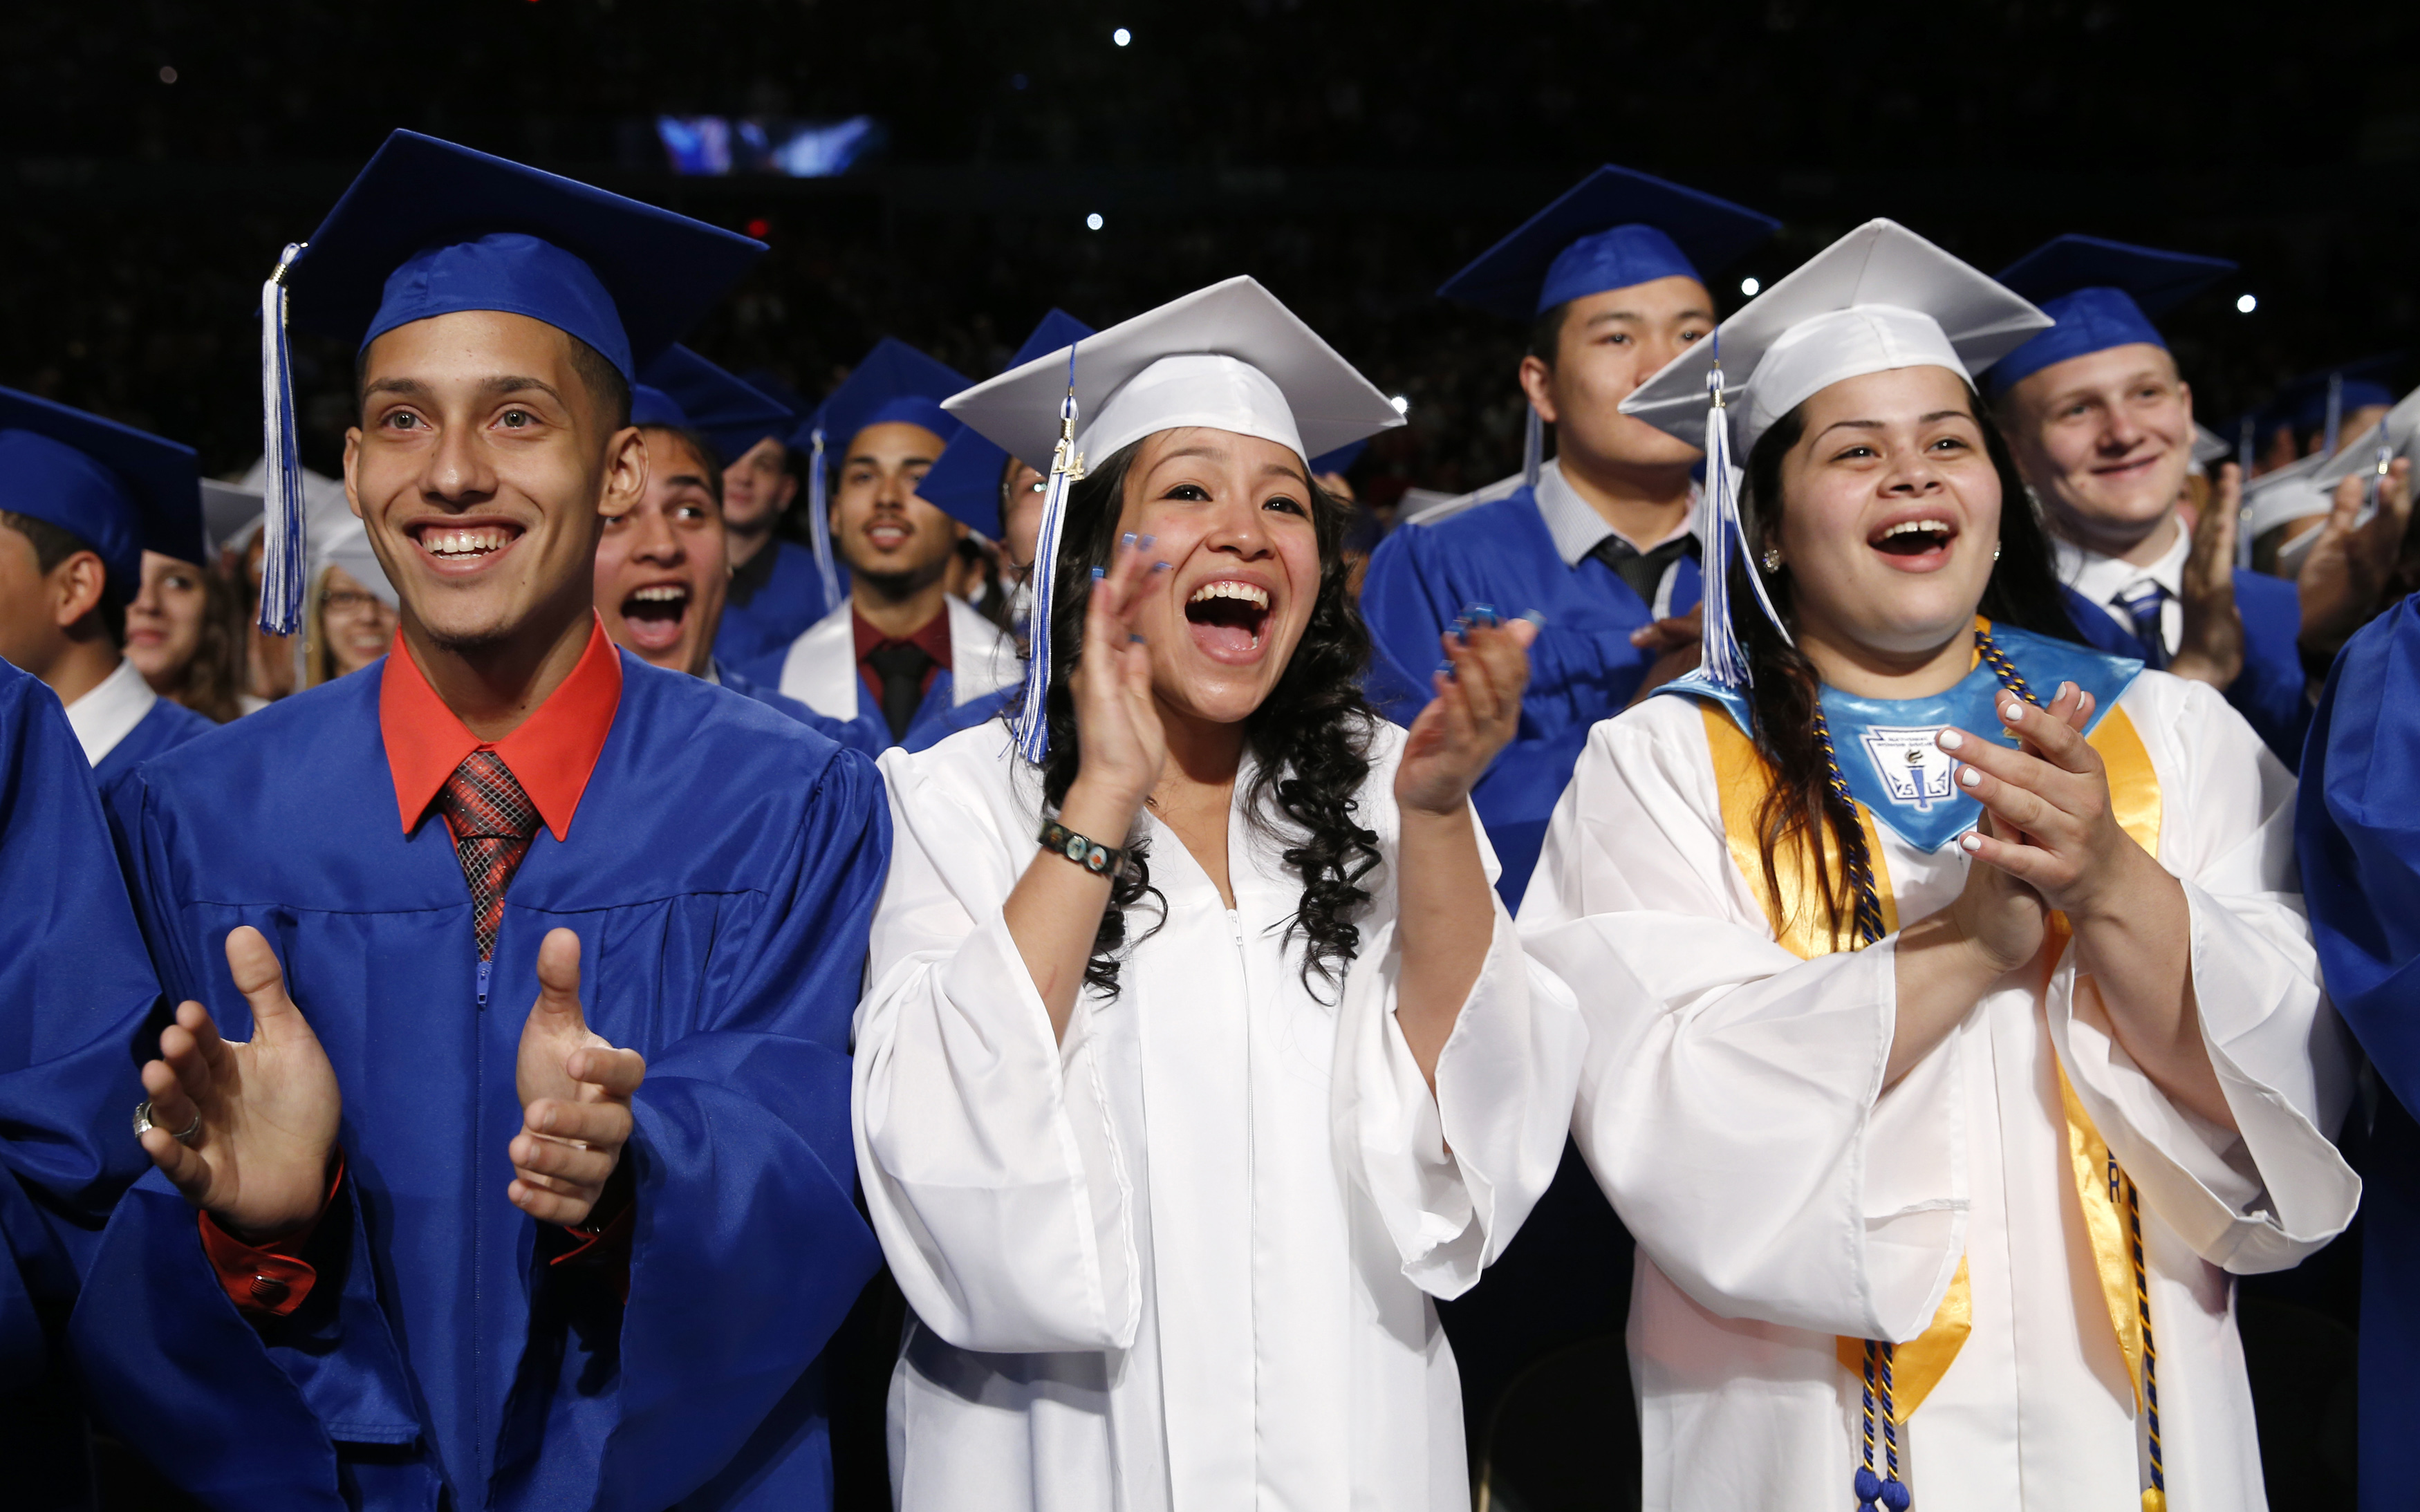 www.brookings.edu: Elite or elitist? Lessons for colleges from selective high schools